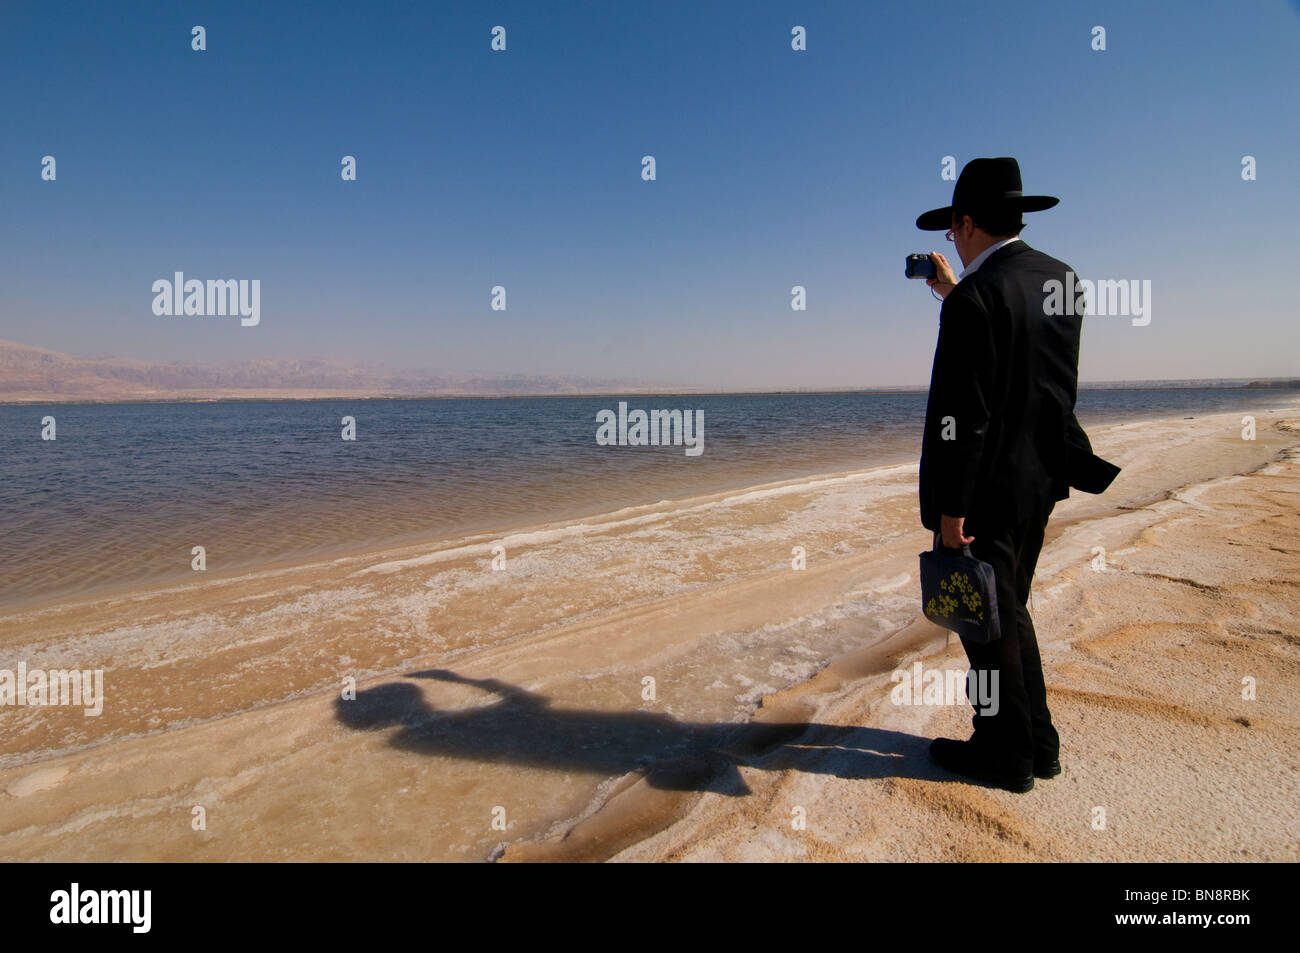 An Ultra orthodox  religious Jew at  the shore of the Dead Sea. Israel - Stock Image